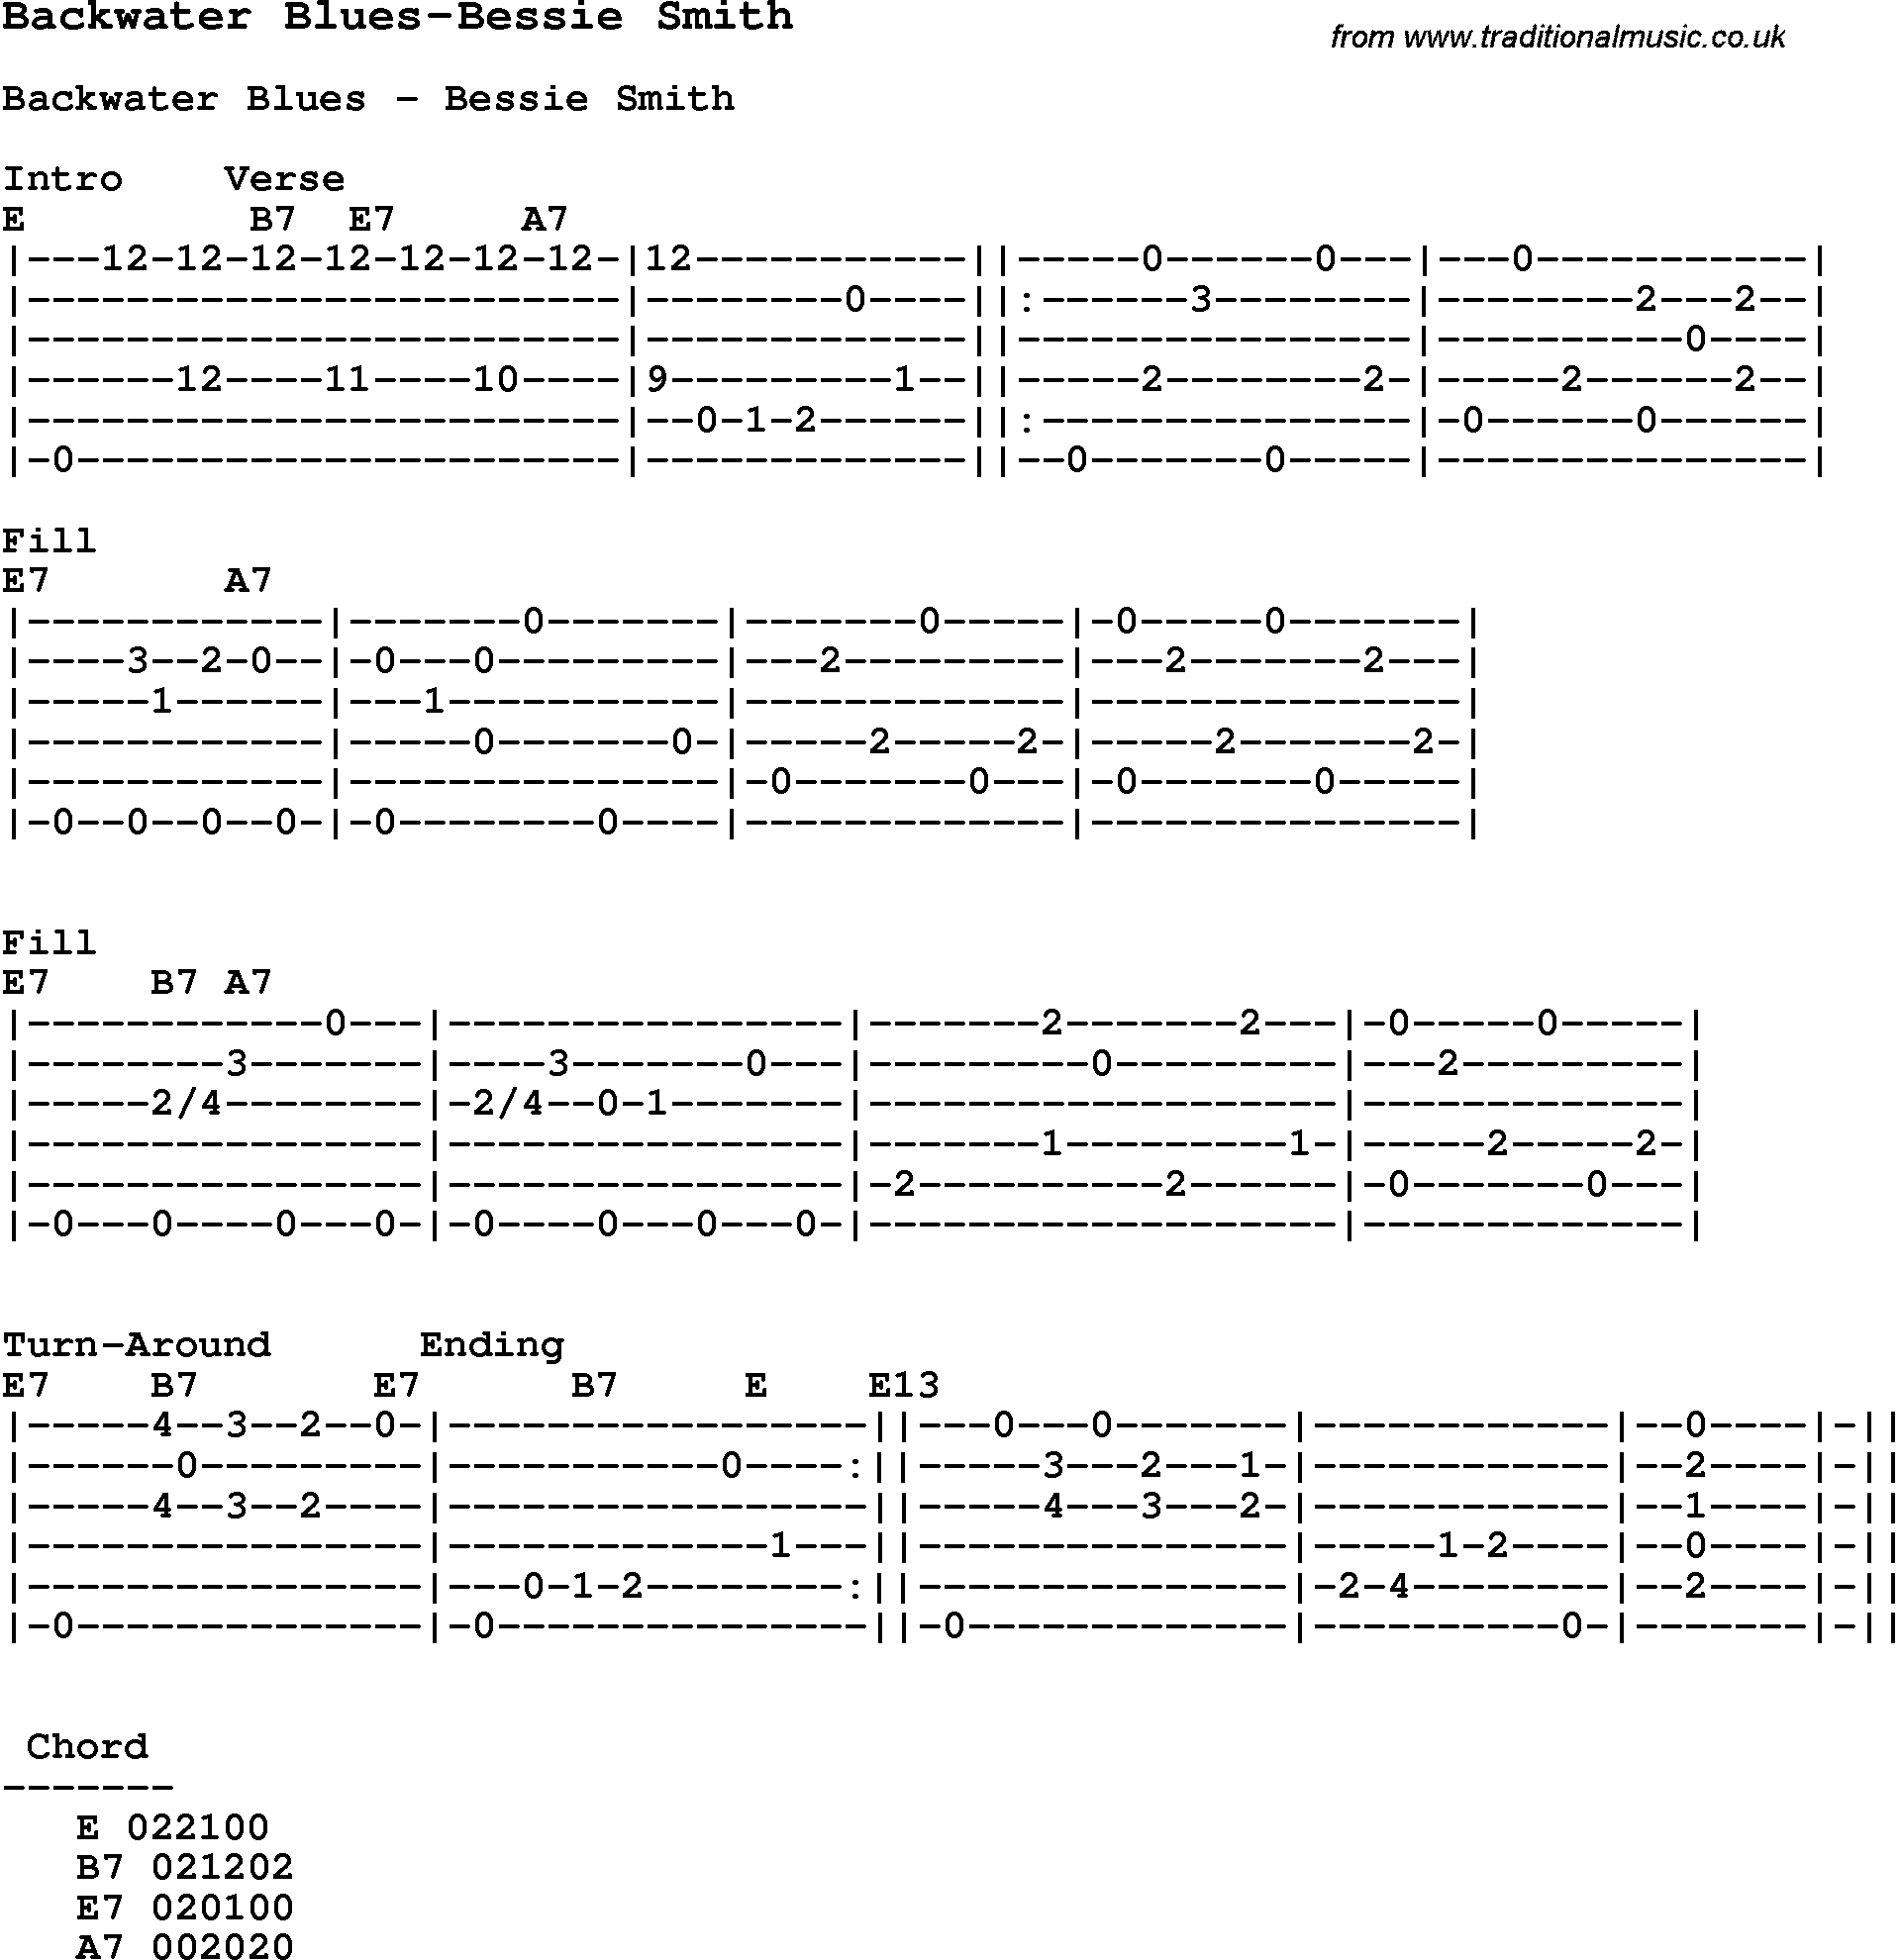 Blues Guitar lesson for Backwater Blues-Bessie Smith, with Chords, Tabs, and Lyrics